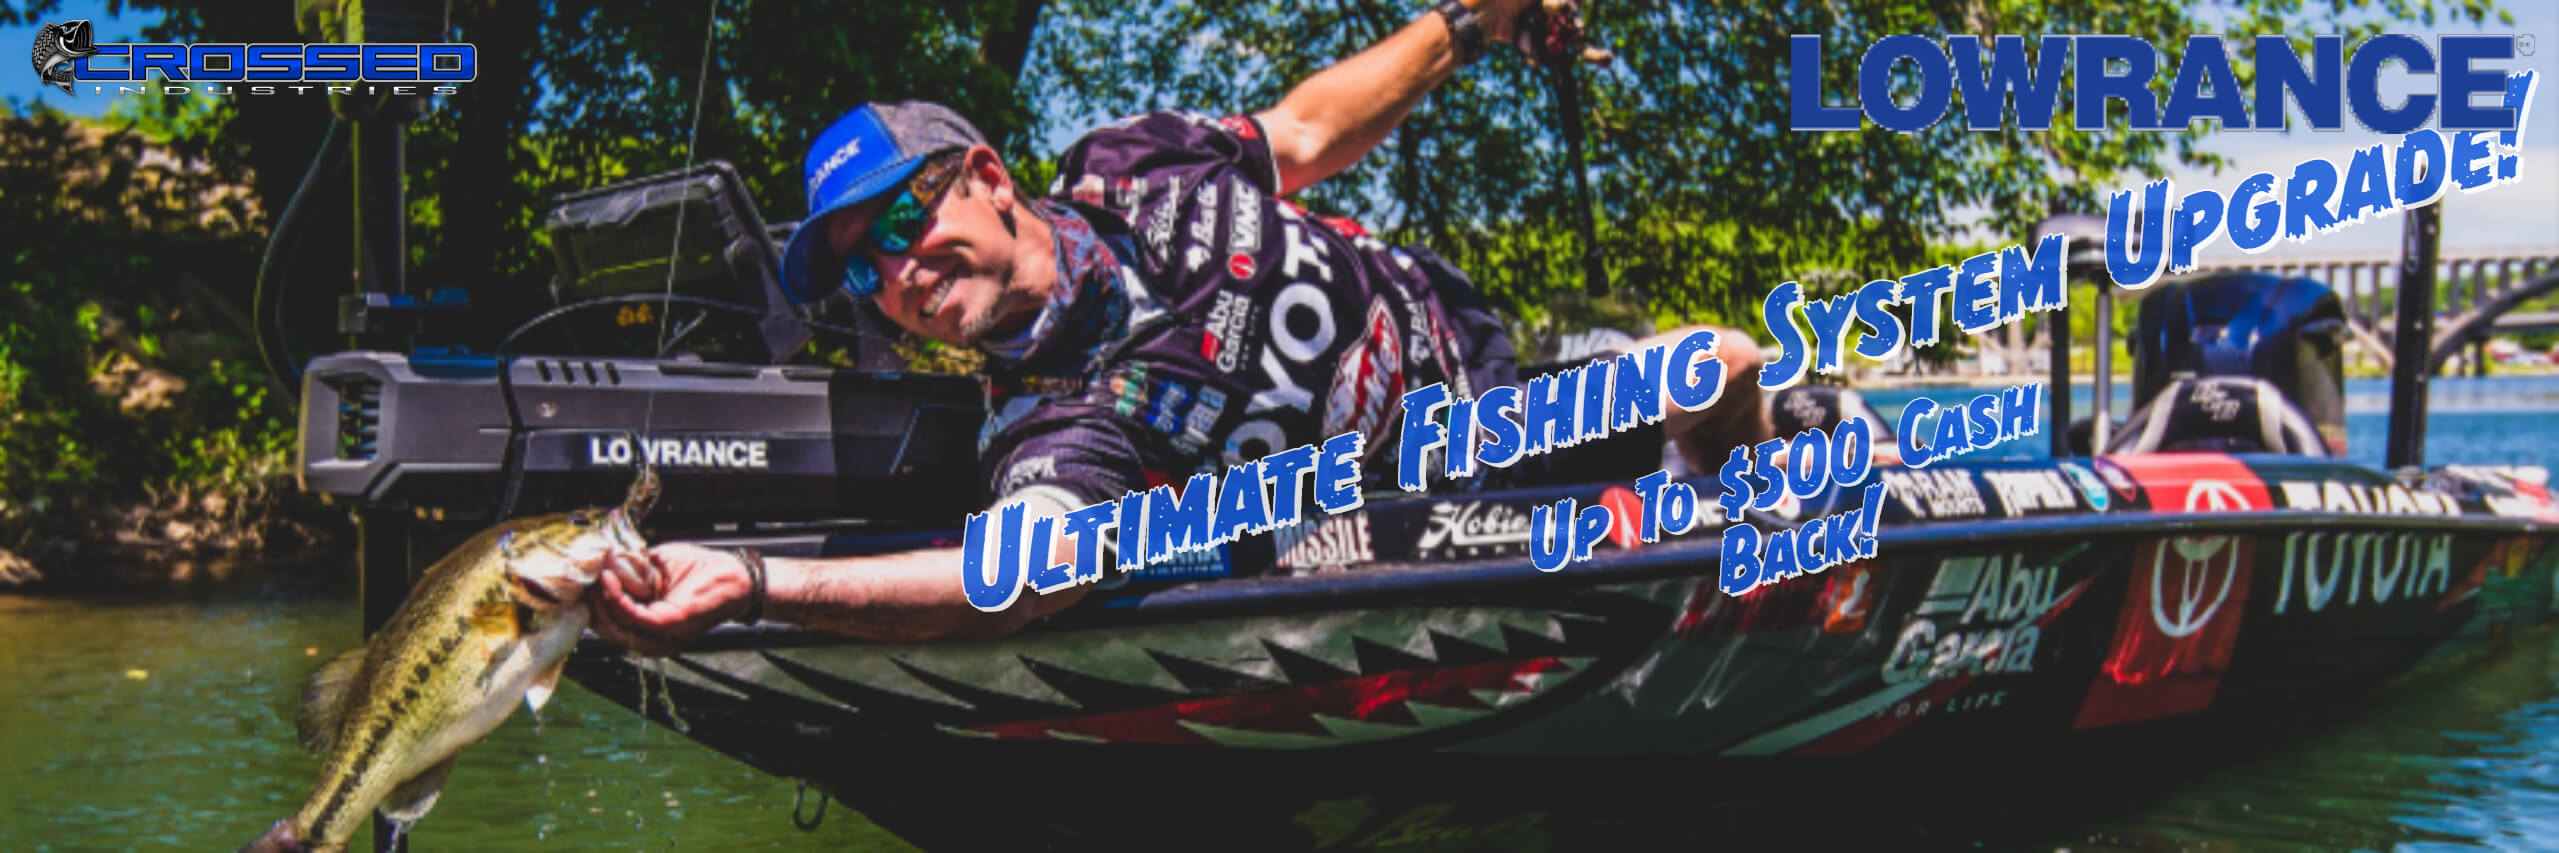 Lowrance Ultimate Fishing System Upgrade - Lowrance UFS